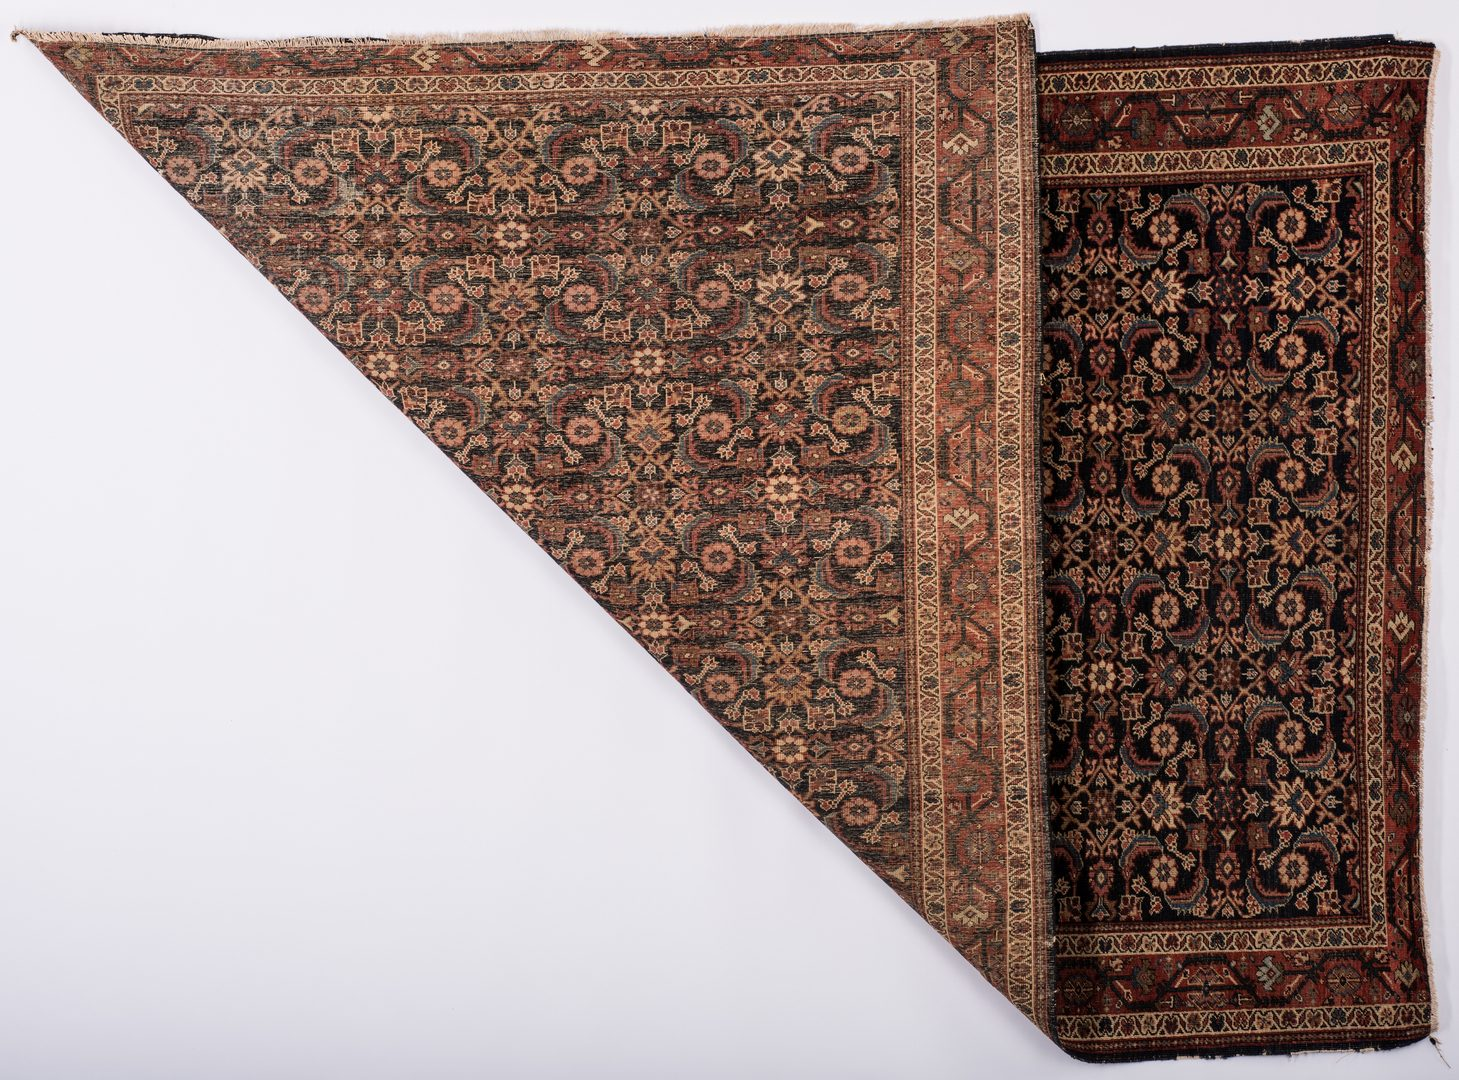 Lot 860: Antique Ferahan Sarouk Area Rug